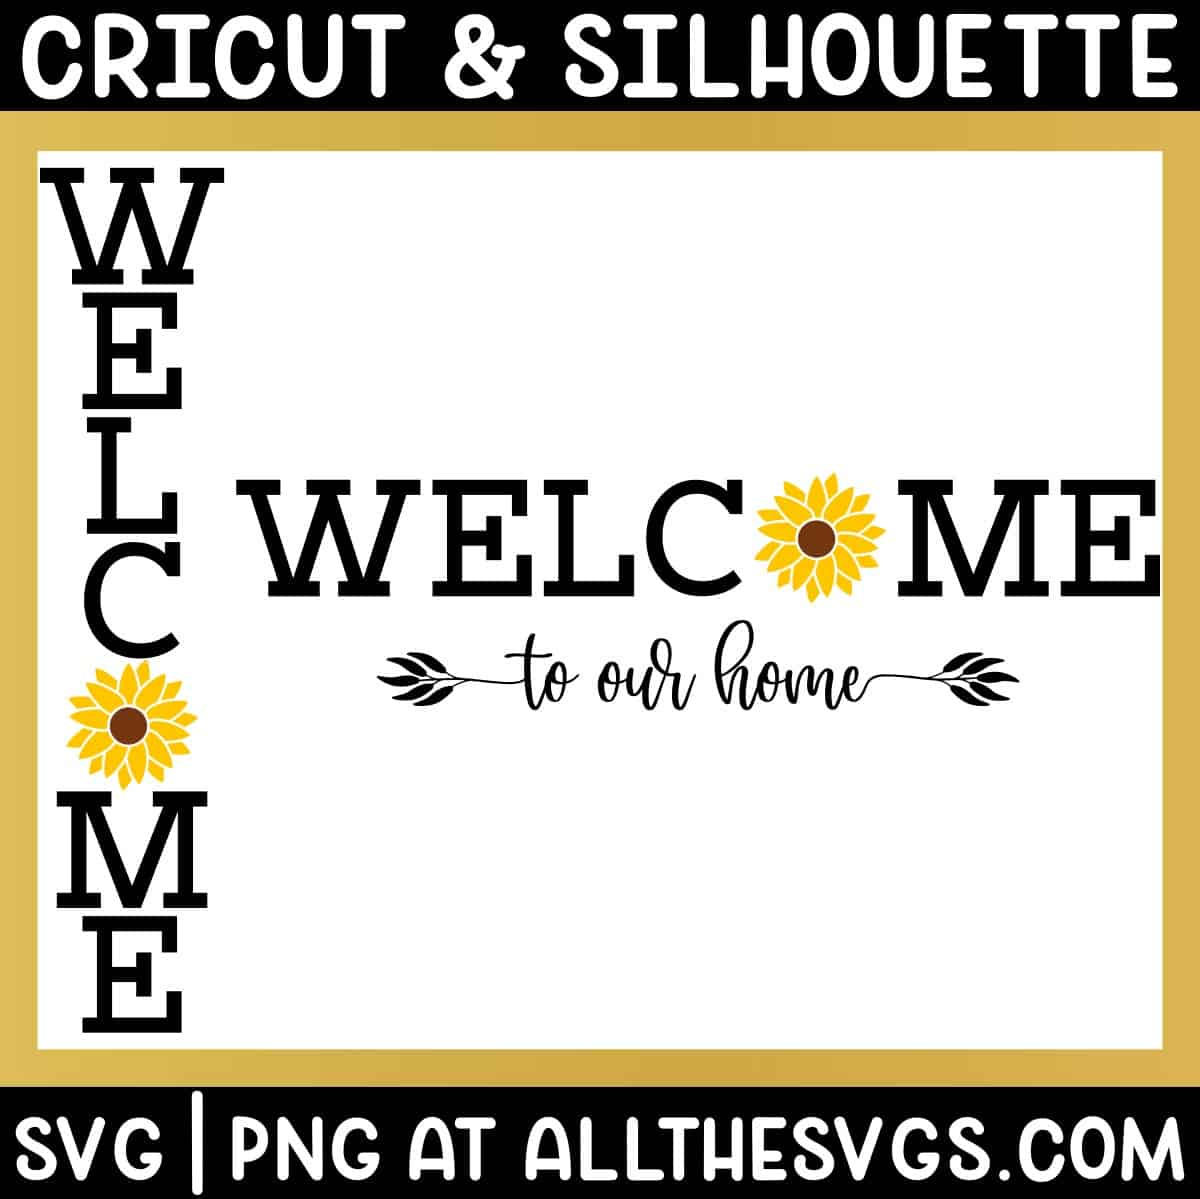 free welcome to our home vertical porch sign and horizontal home decor wall art.